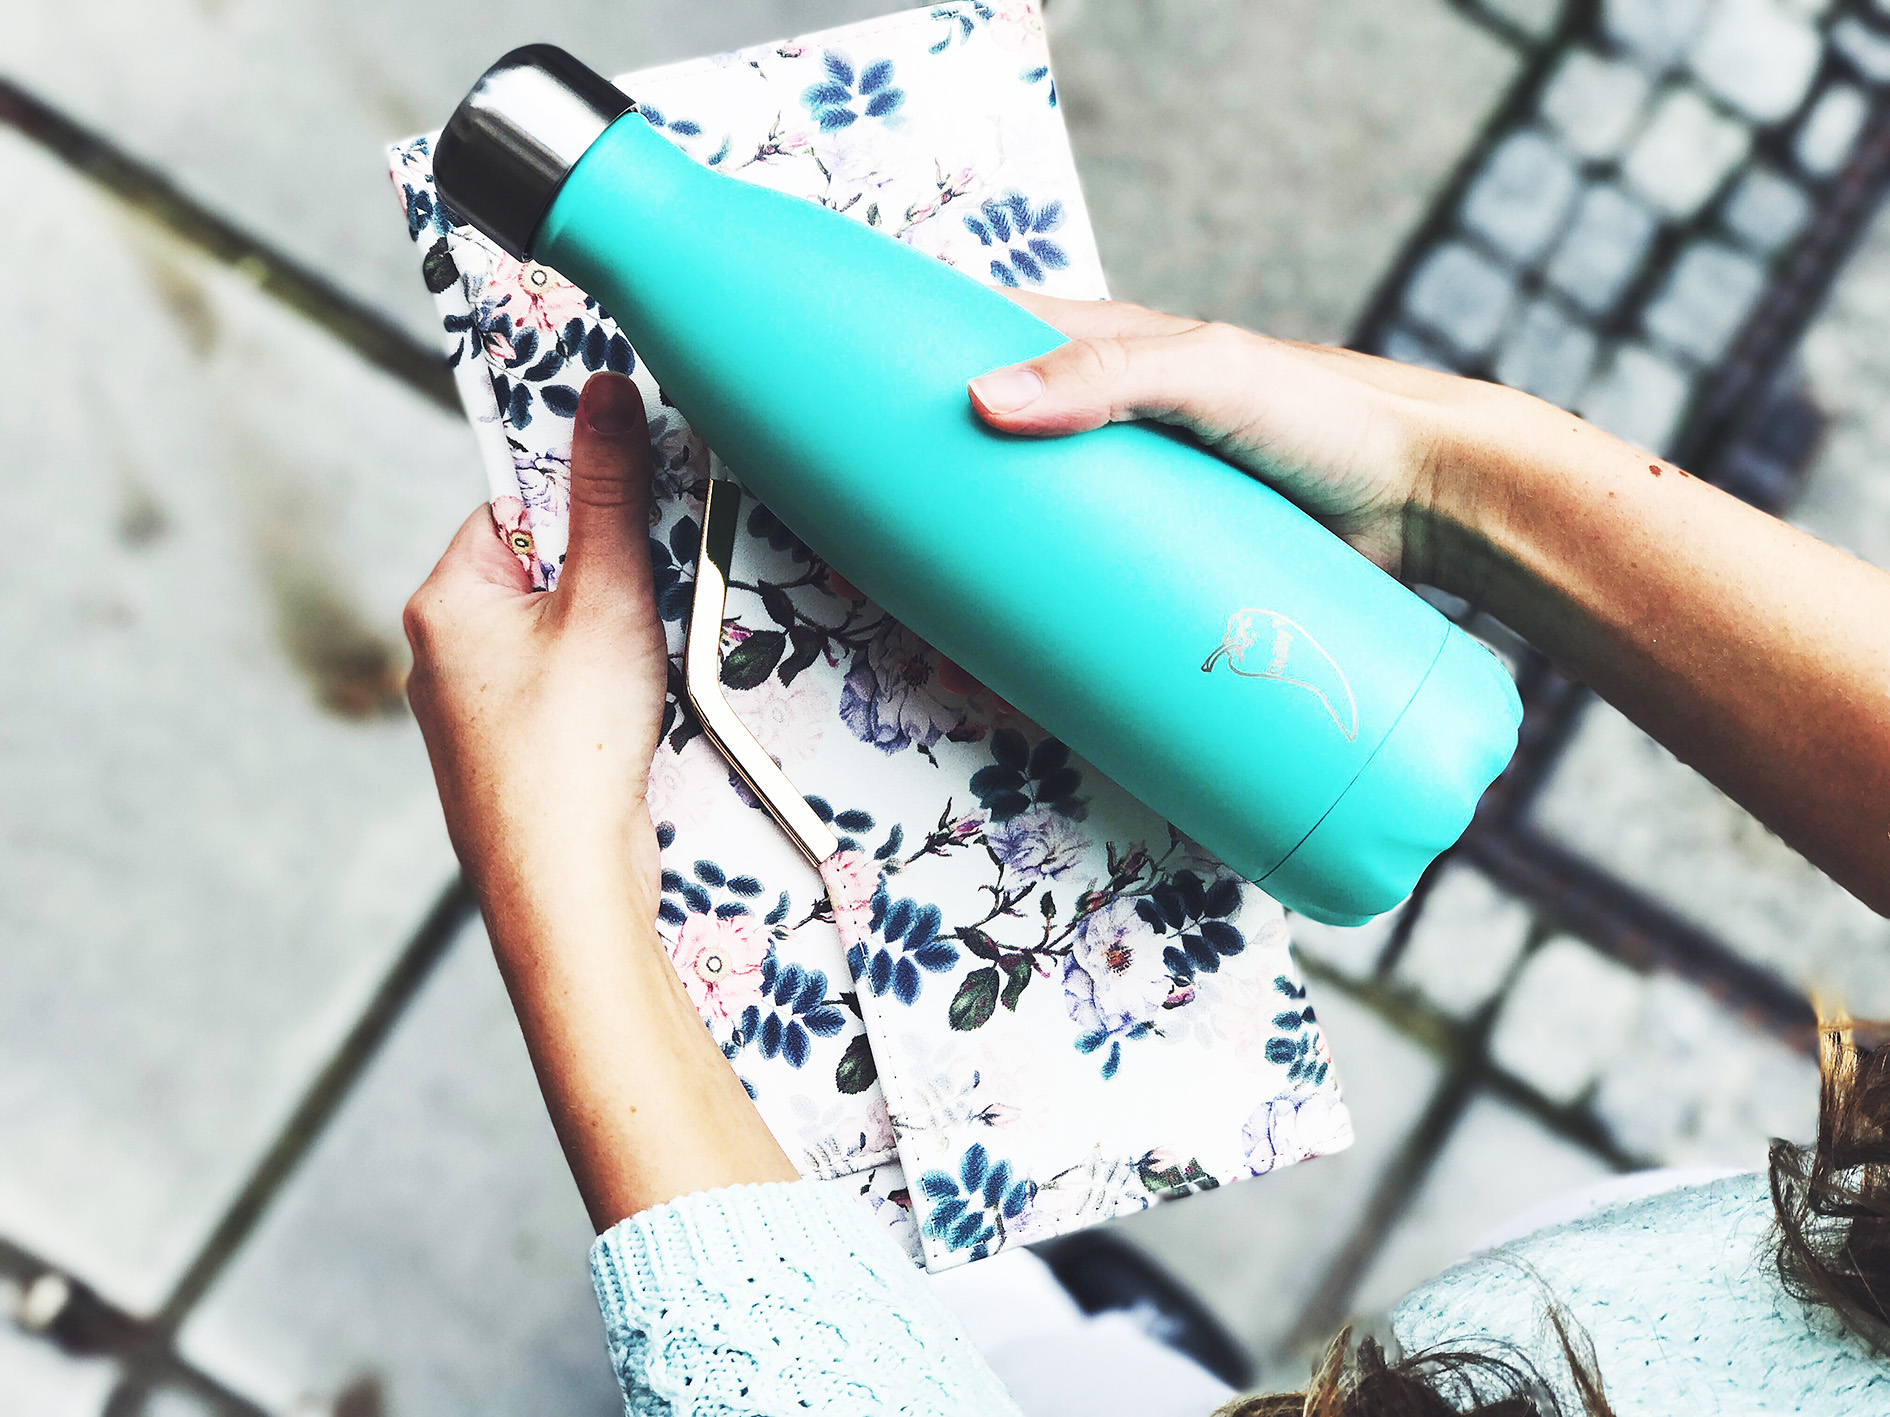 Chilly's bottles are made from high grade stainless steel and keep water cold for 24 hours. From £15